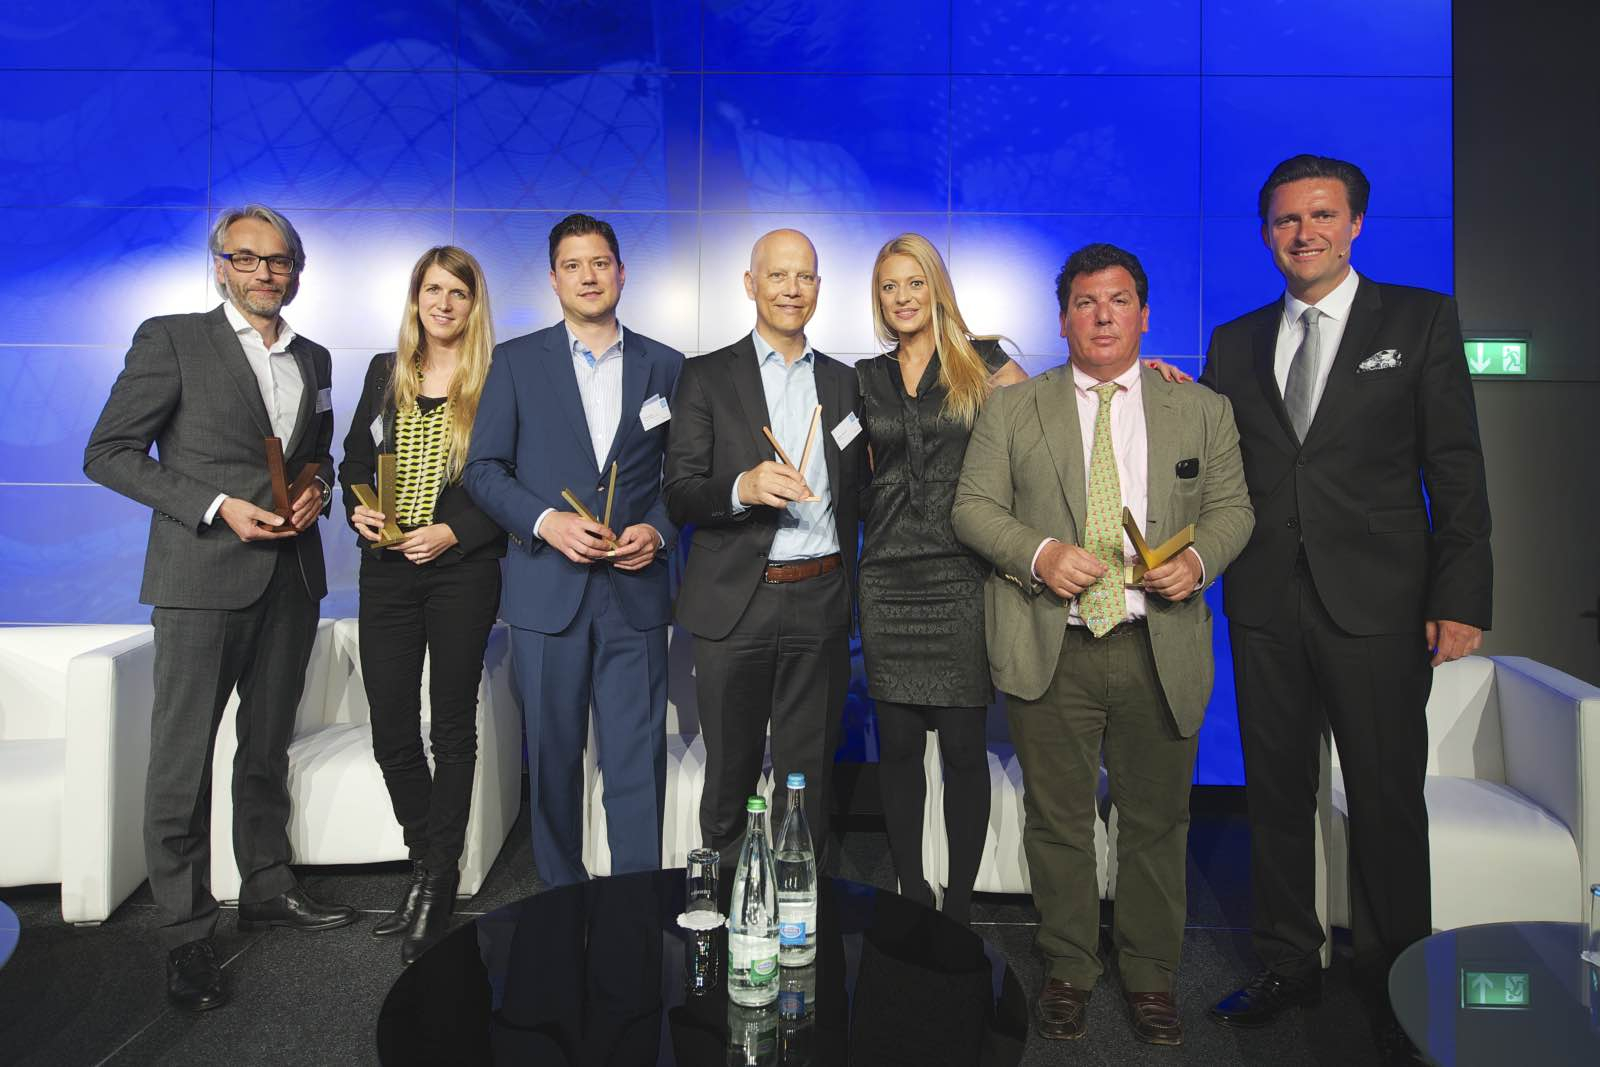 Die Gewinner der diesjährigen Victor Marketing Awards zusammen mit Moderatorin Christa Rigozzi und Uwe Tännler vom Swiss Council of Shopping Centers.